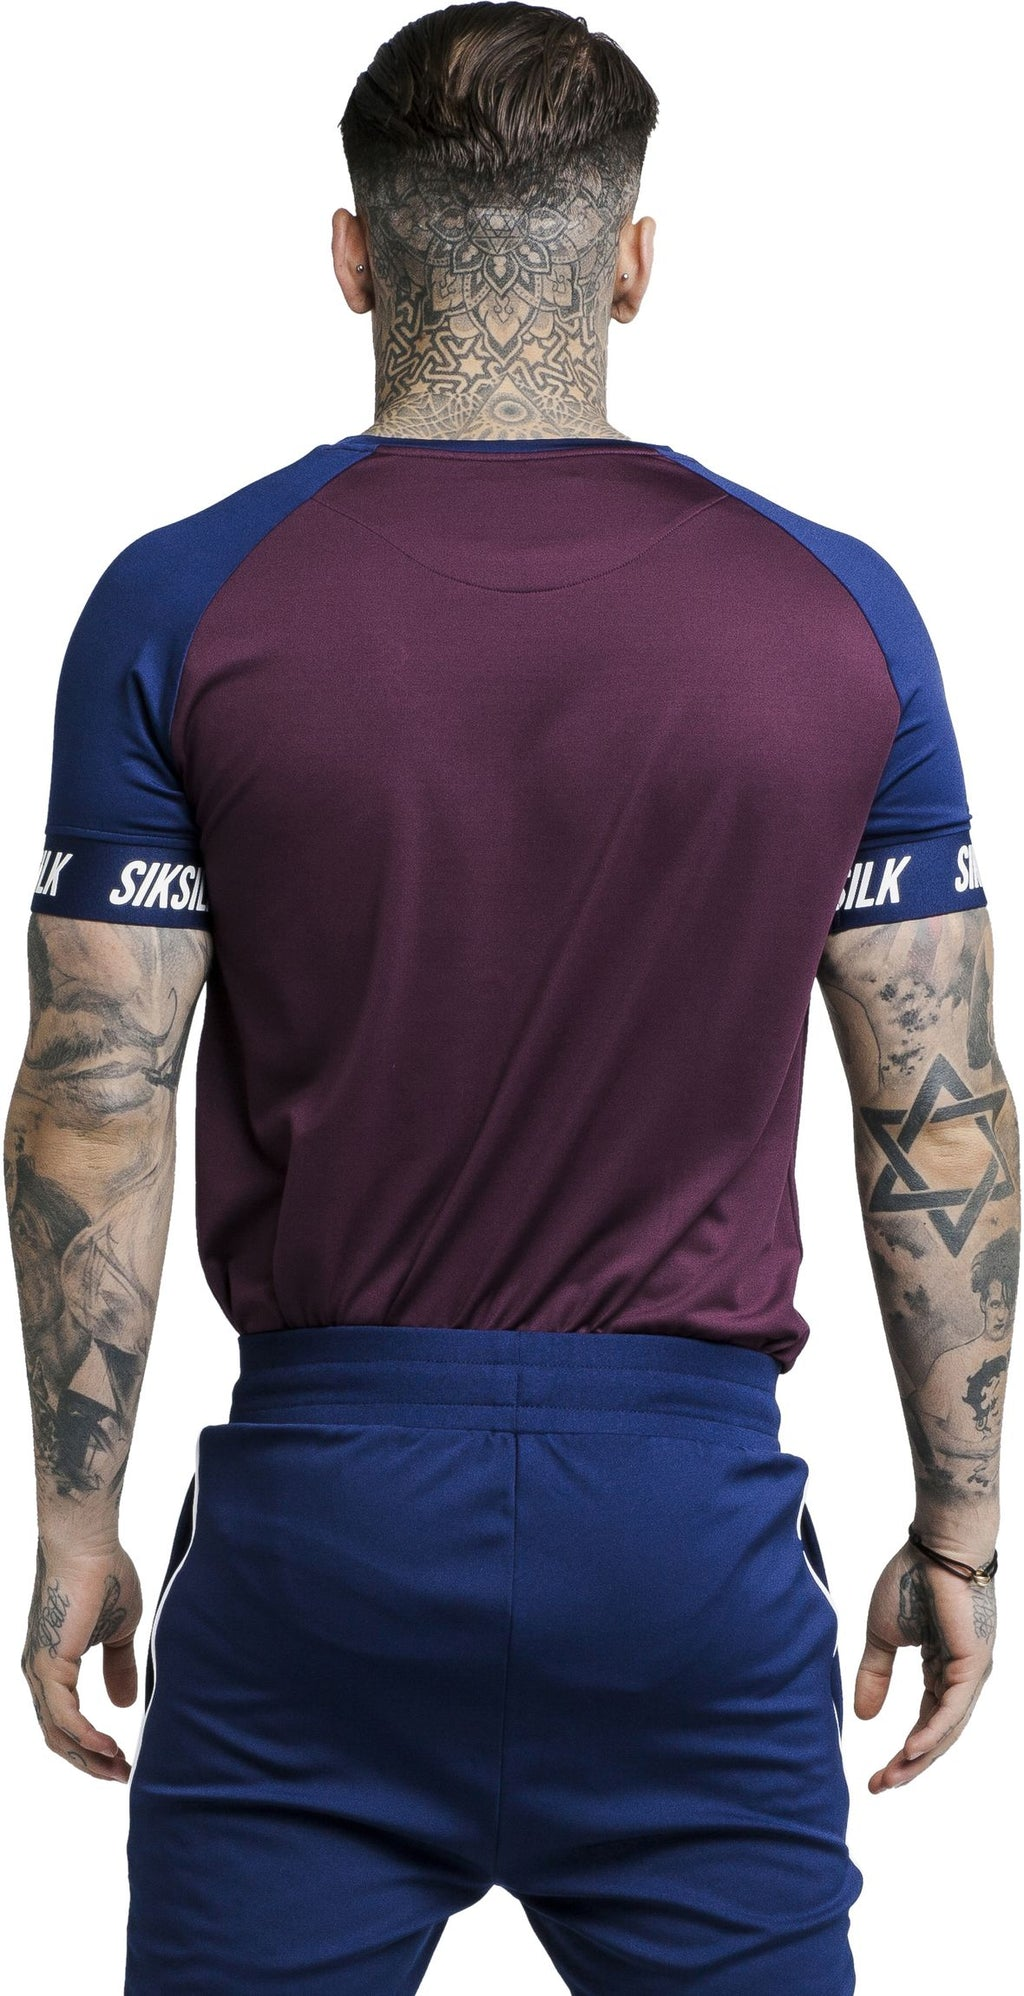 Sik Silk Raglan Tech T-Shirt Burgundy